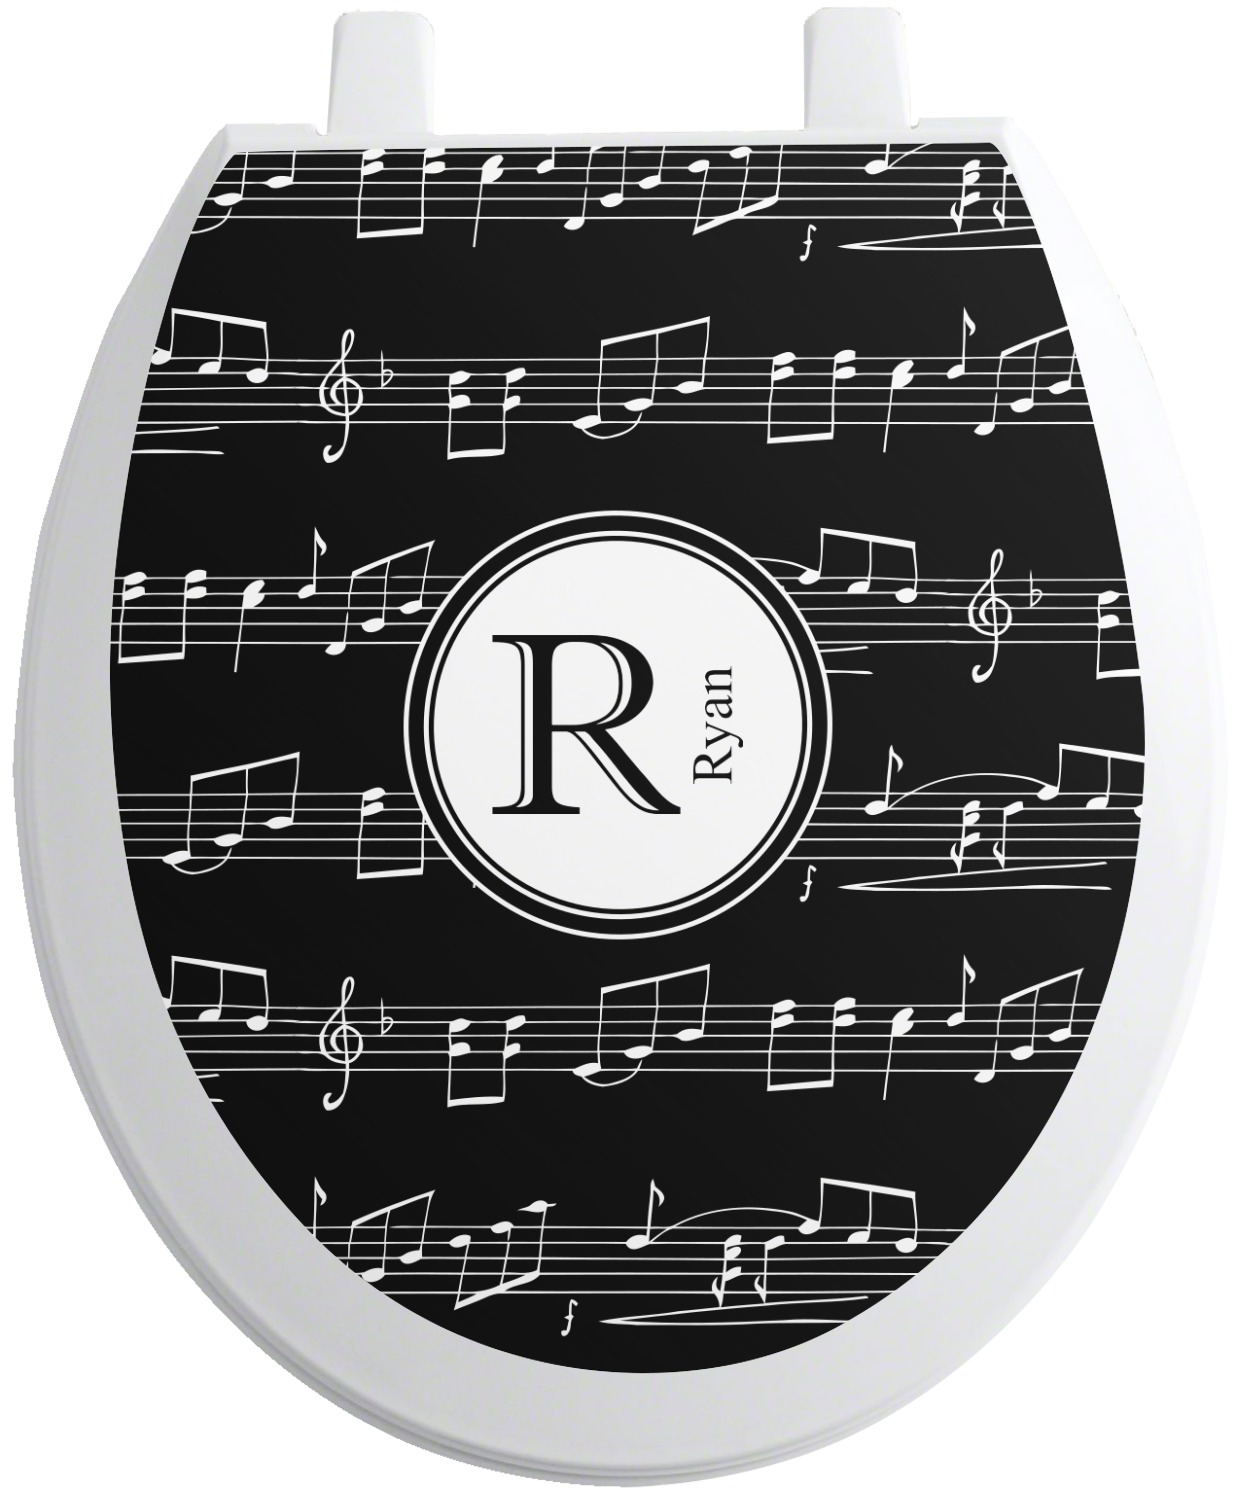 musical notes toilet seat decal elongated personalized. Black Bedroom Furniture Sets. Home Design Ideas